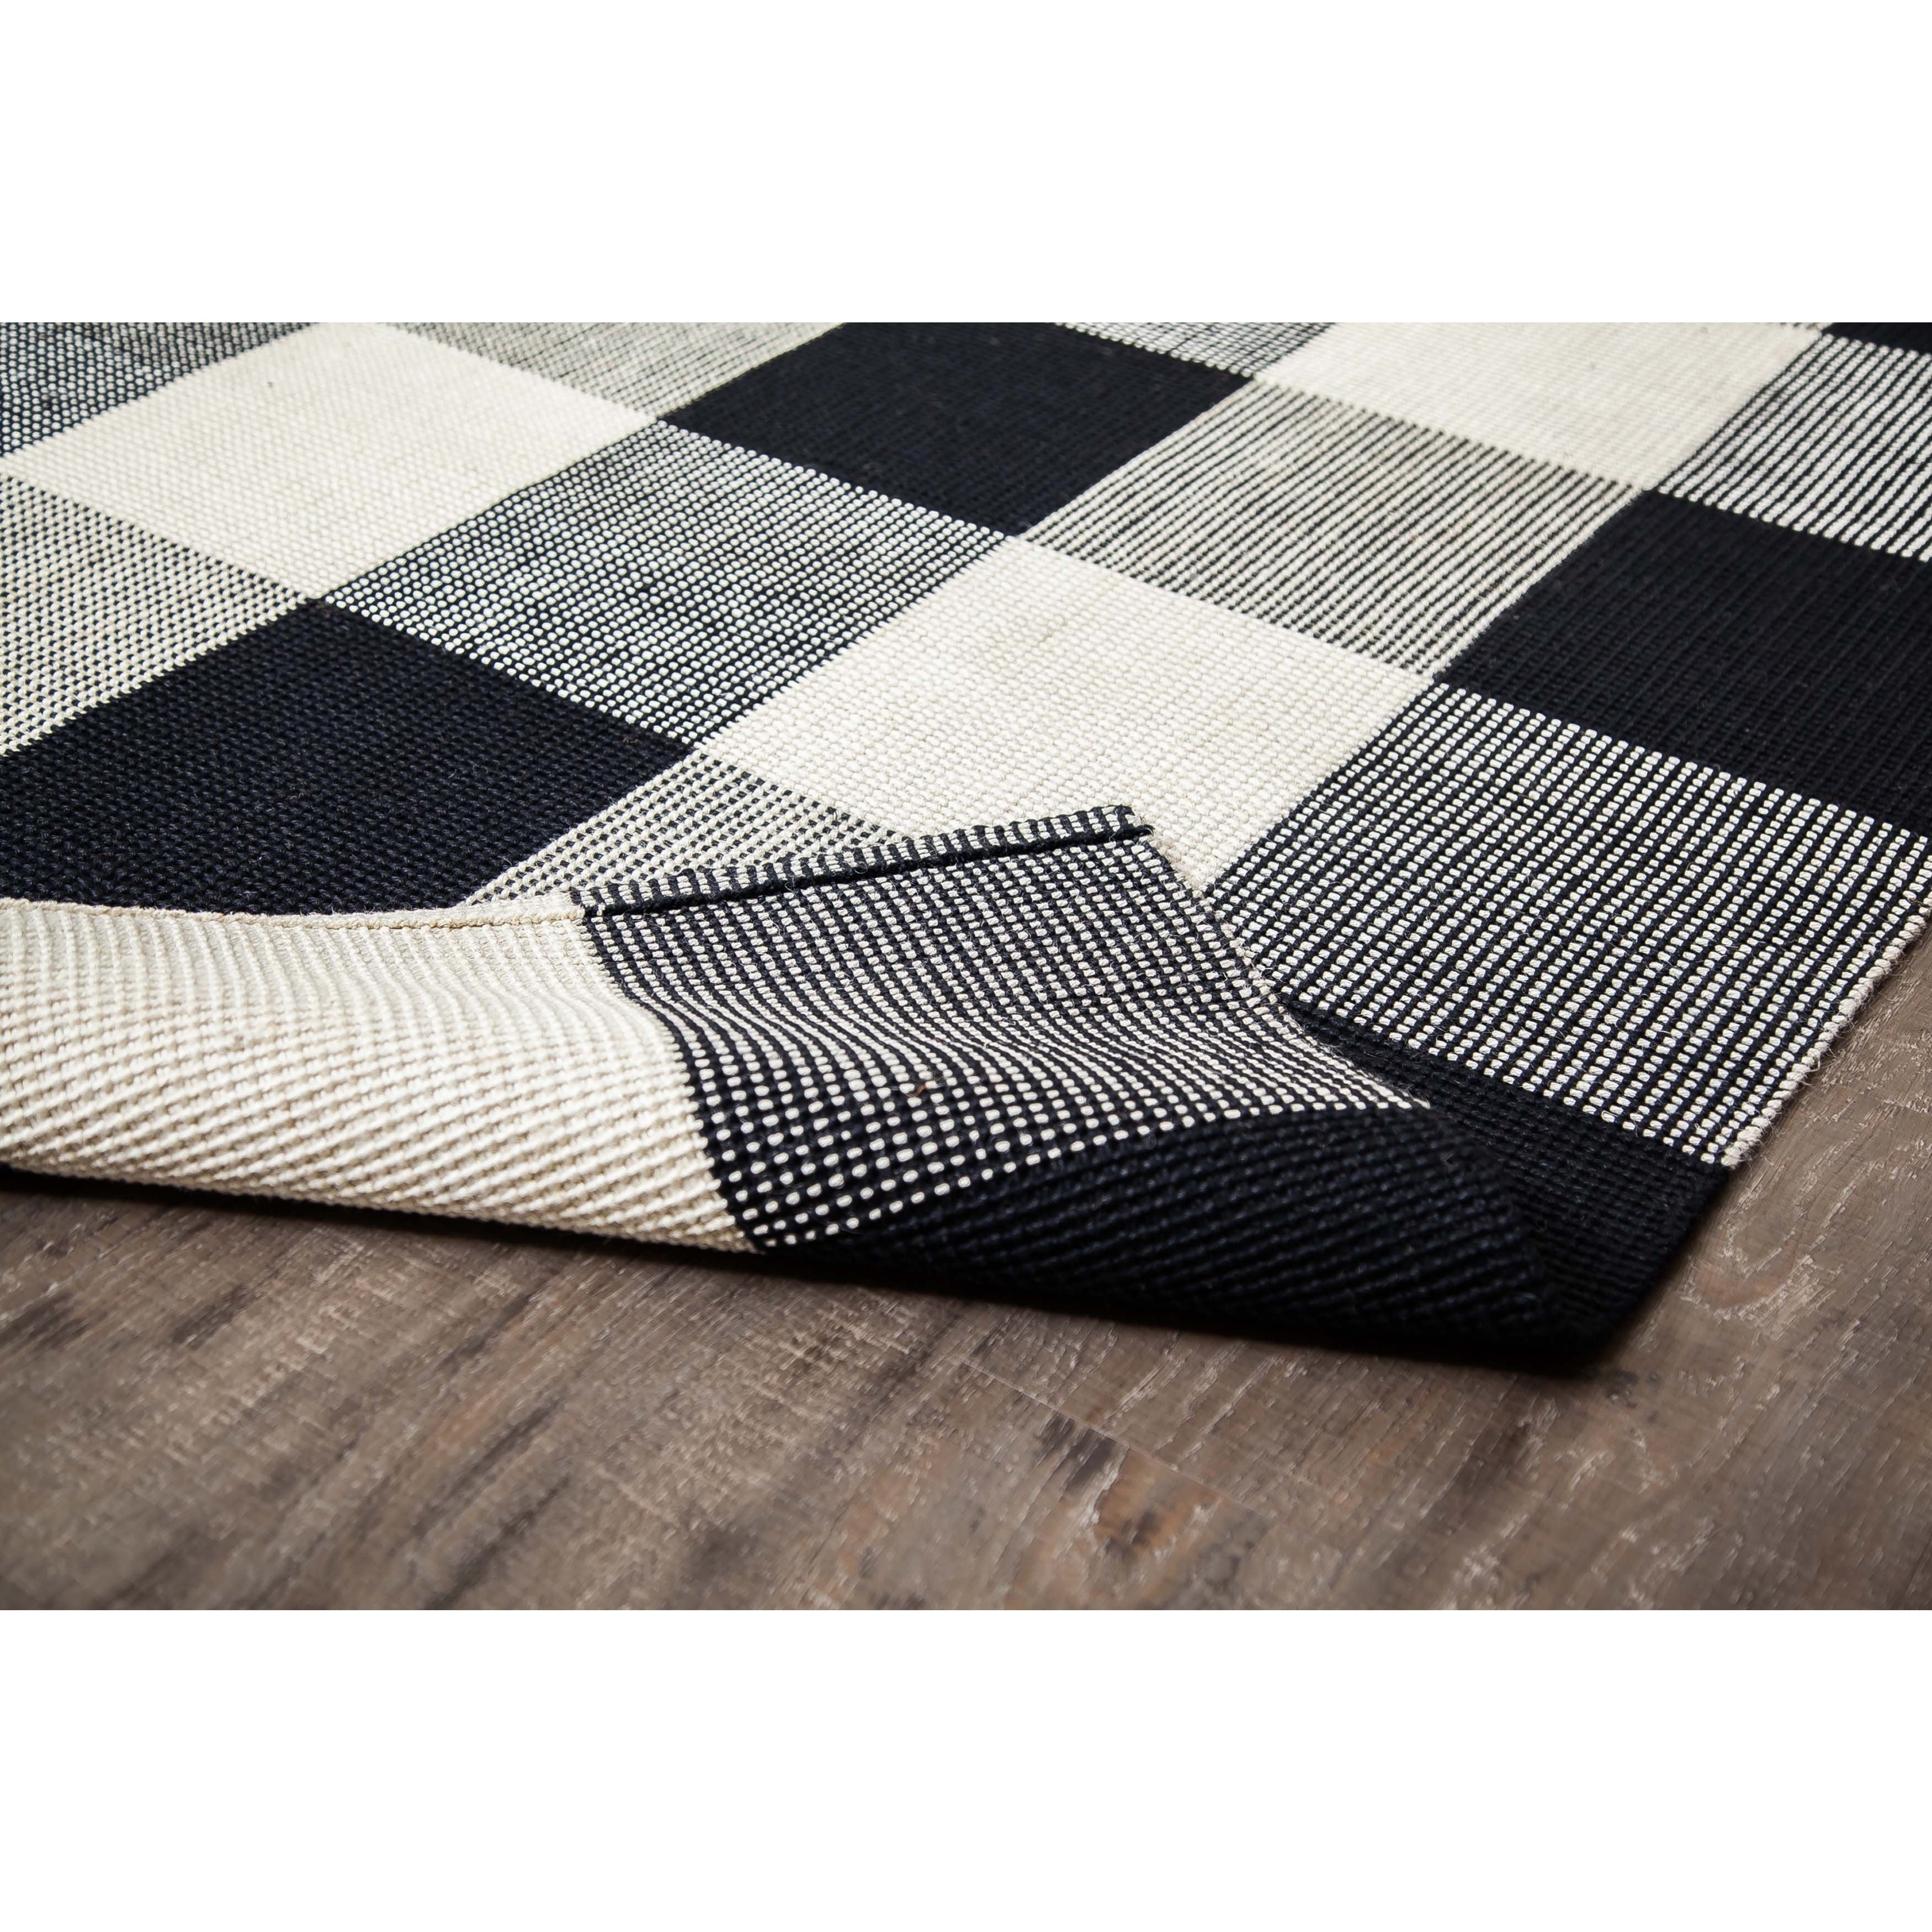 Jani Perry Black And Ivory Buffalo Plaid Jute Rug Free Shipping Today 15312924